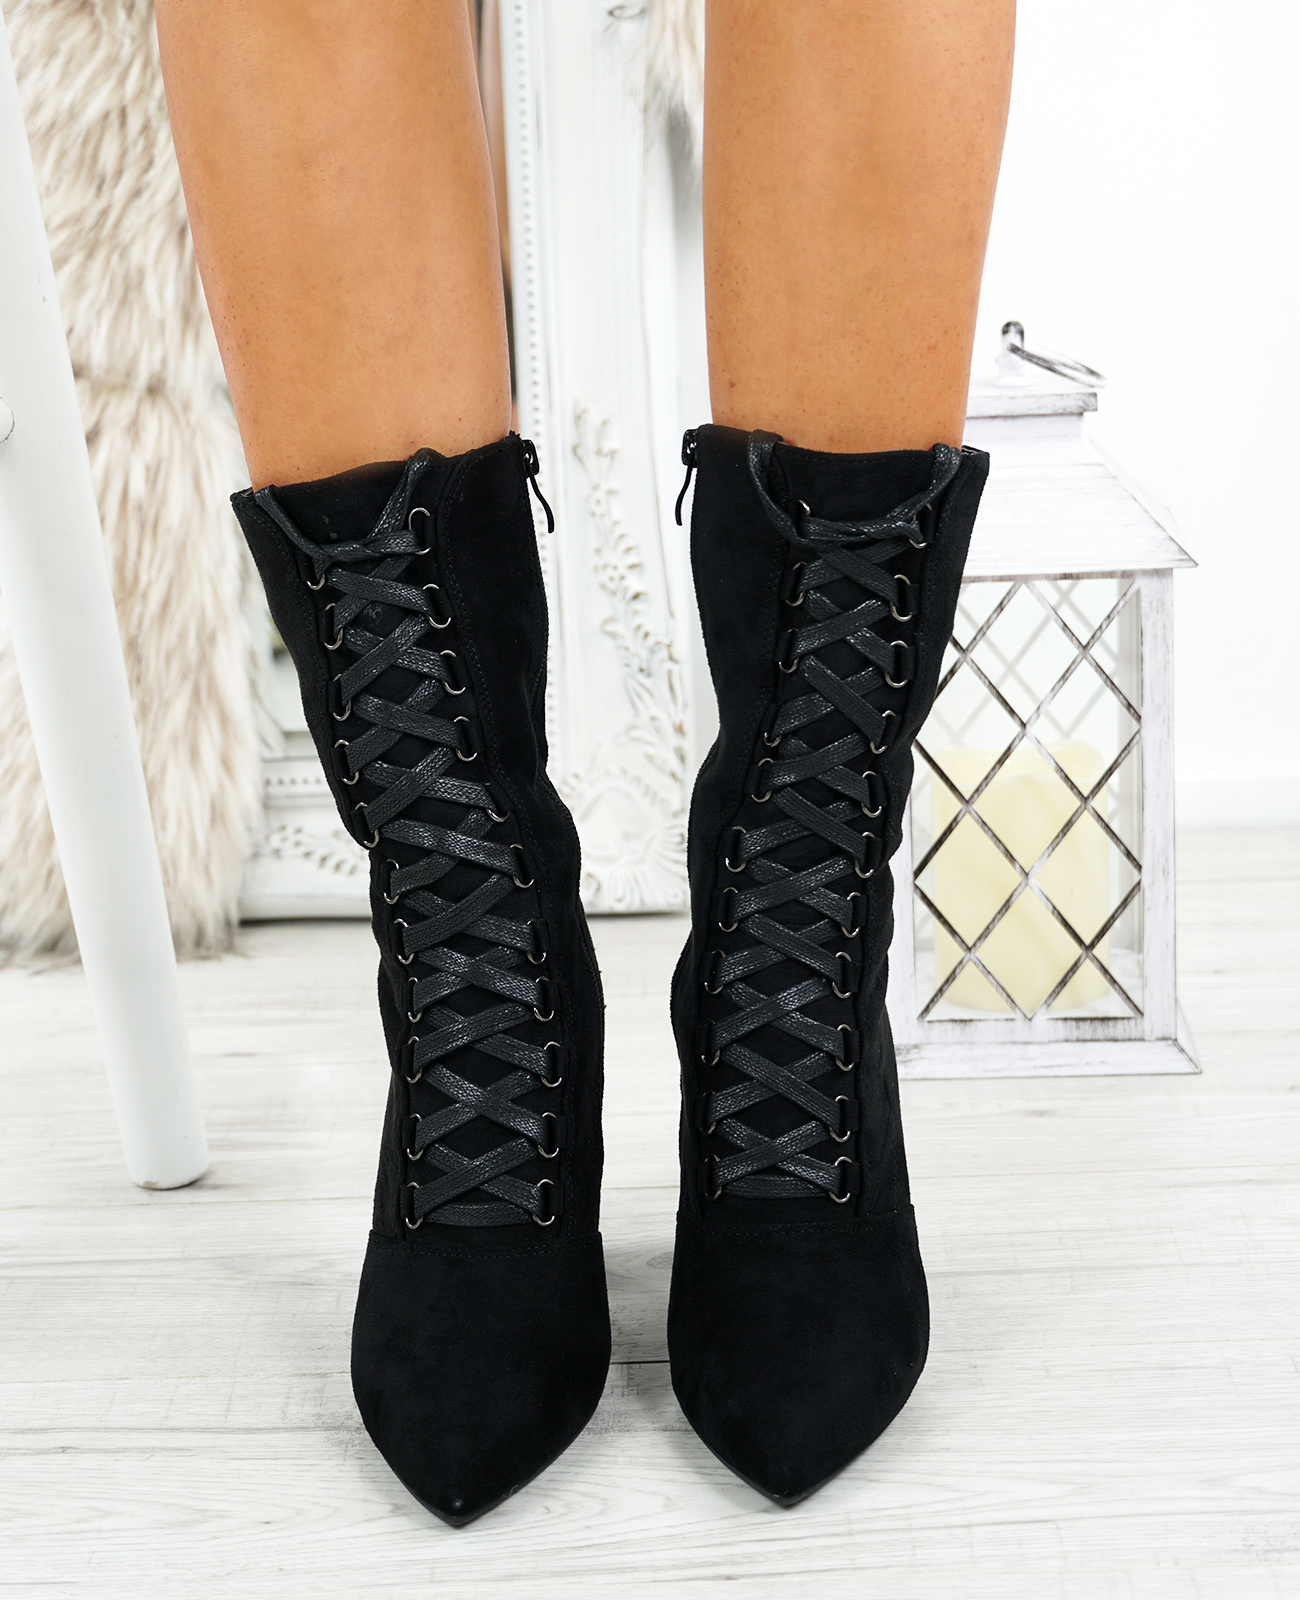 LADIES-WOMENS-HIGH-TOP-ANKLE-BOOTS-SIDE-ZIP-LACE-BLOCK-HEEL-POINTED-TOE-SHOES thumbnail 9